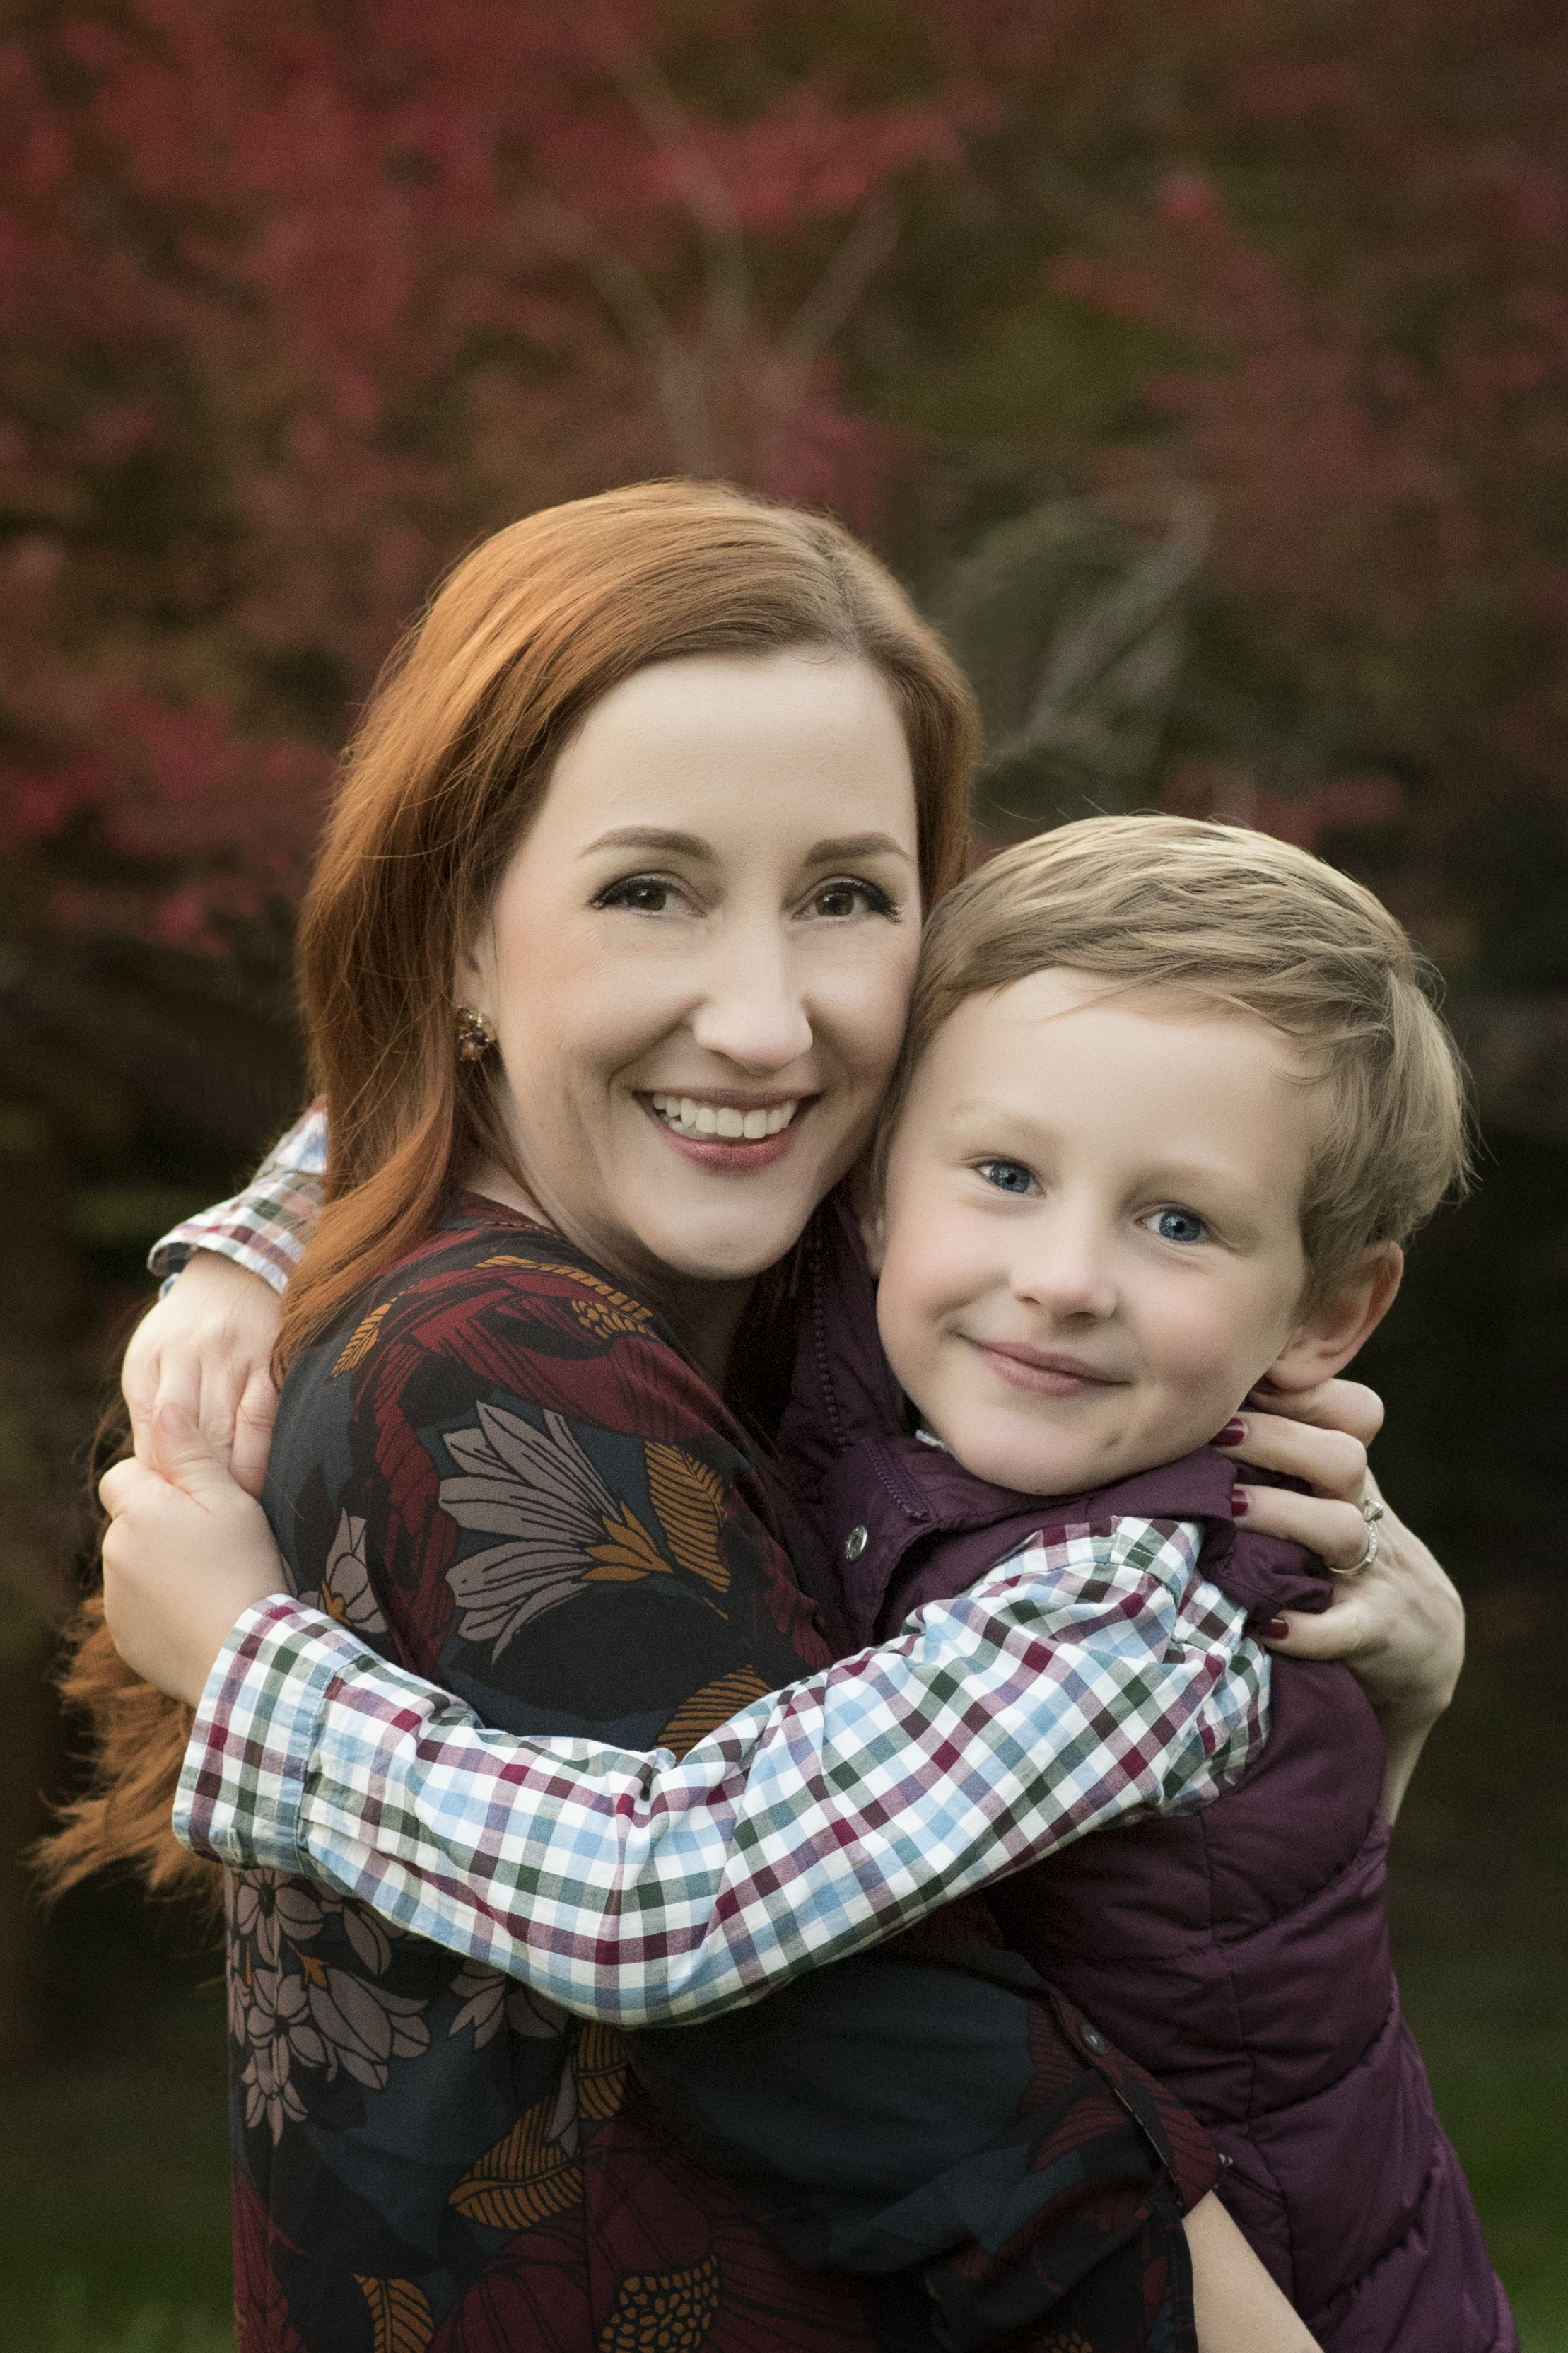 Mother Son Embrace Northern Virginia Family photographer Kate Montaner